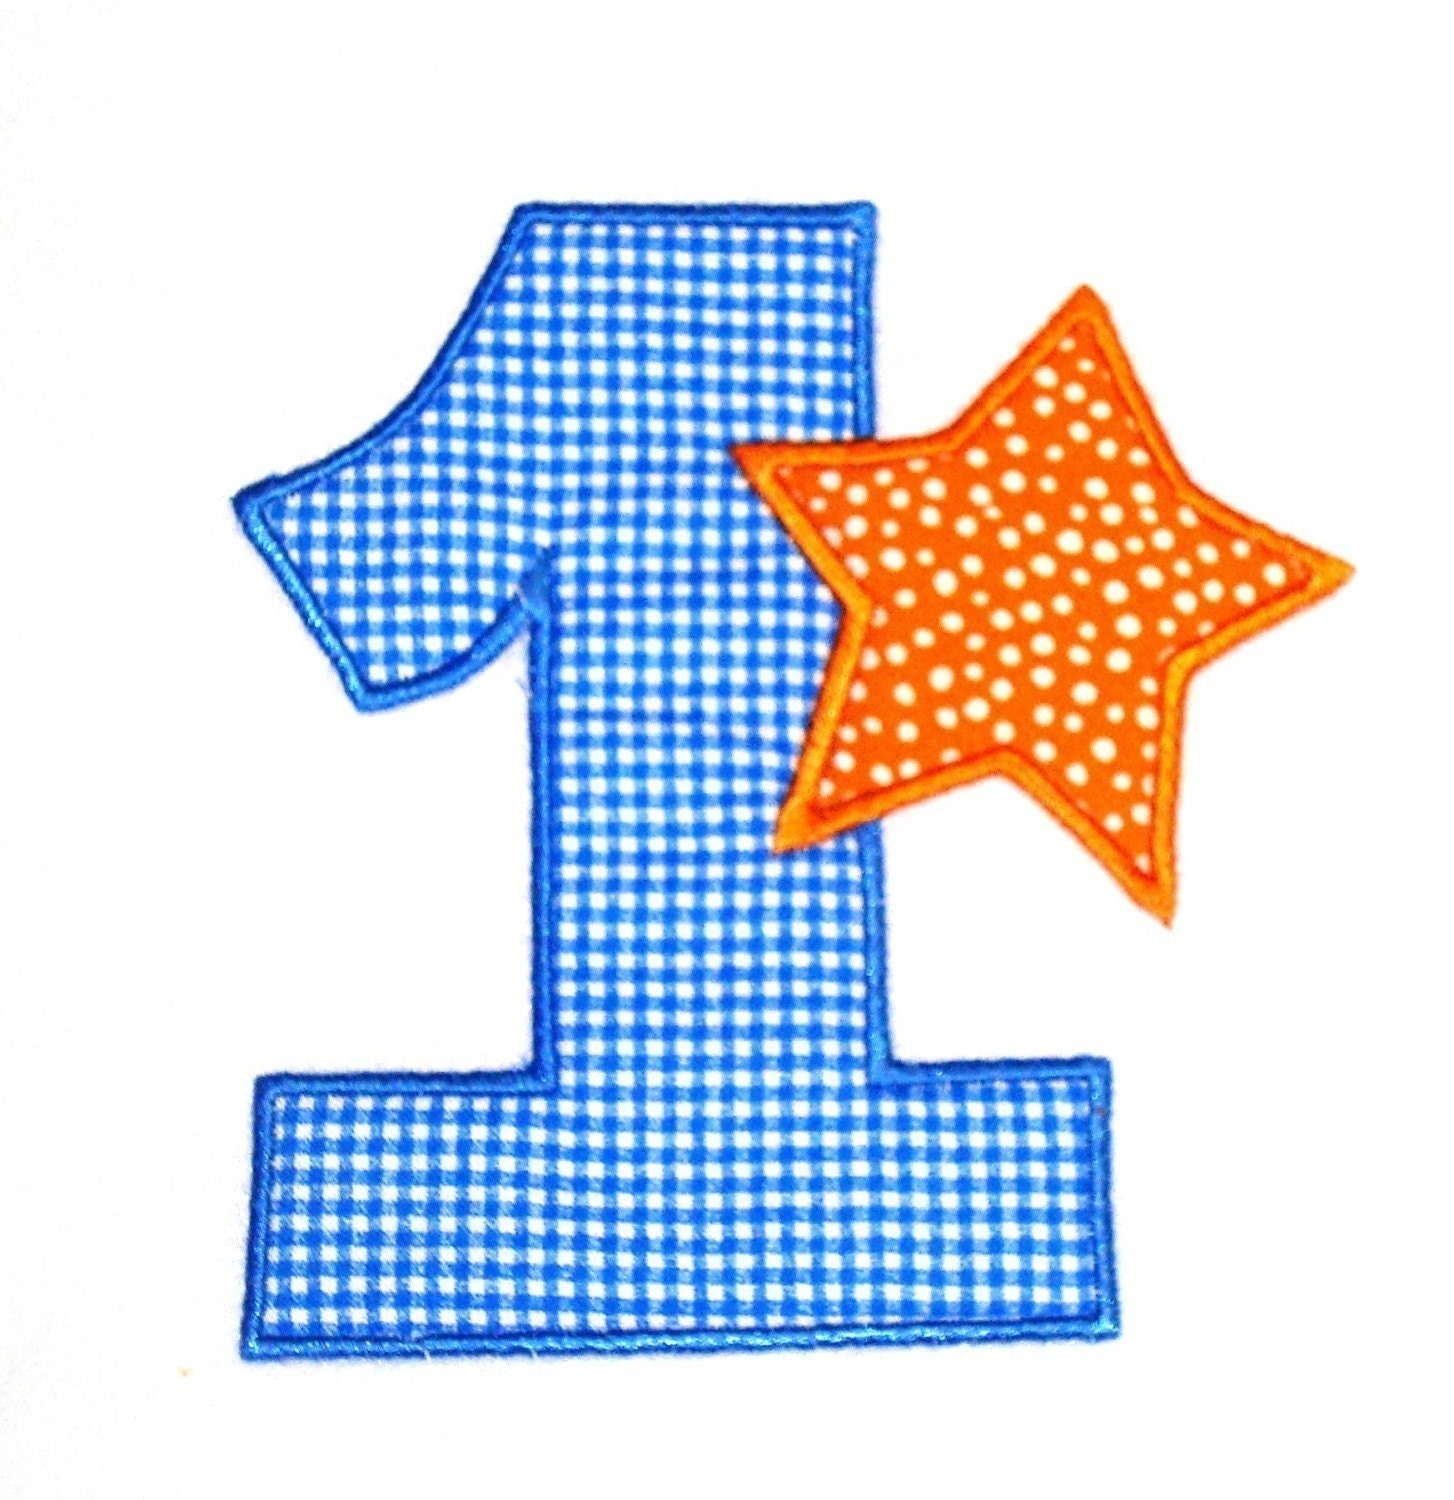 Machine embroidery applique design star numbers and